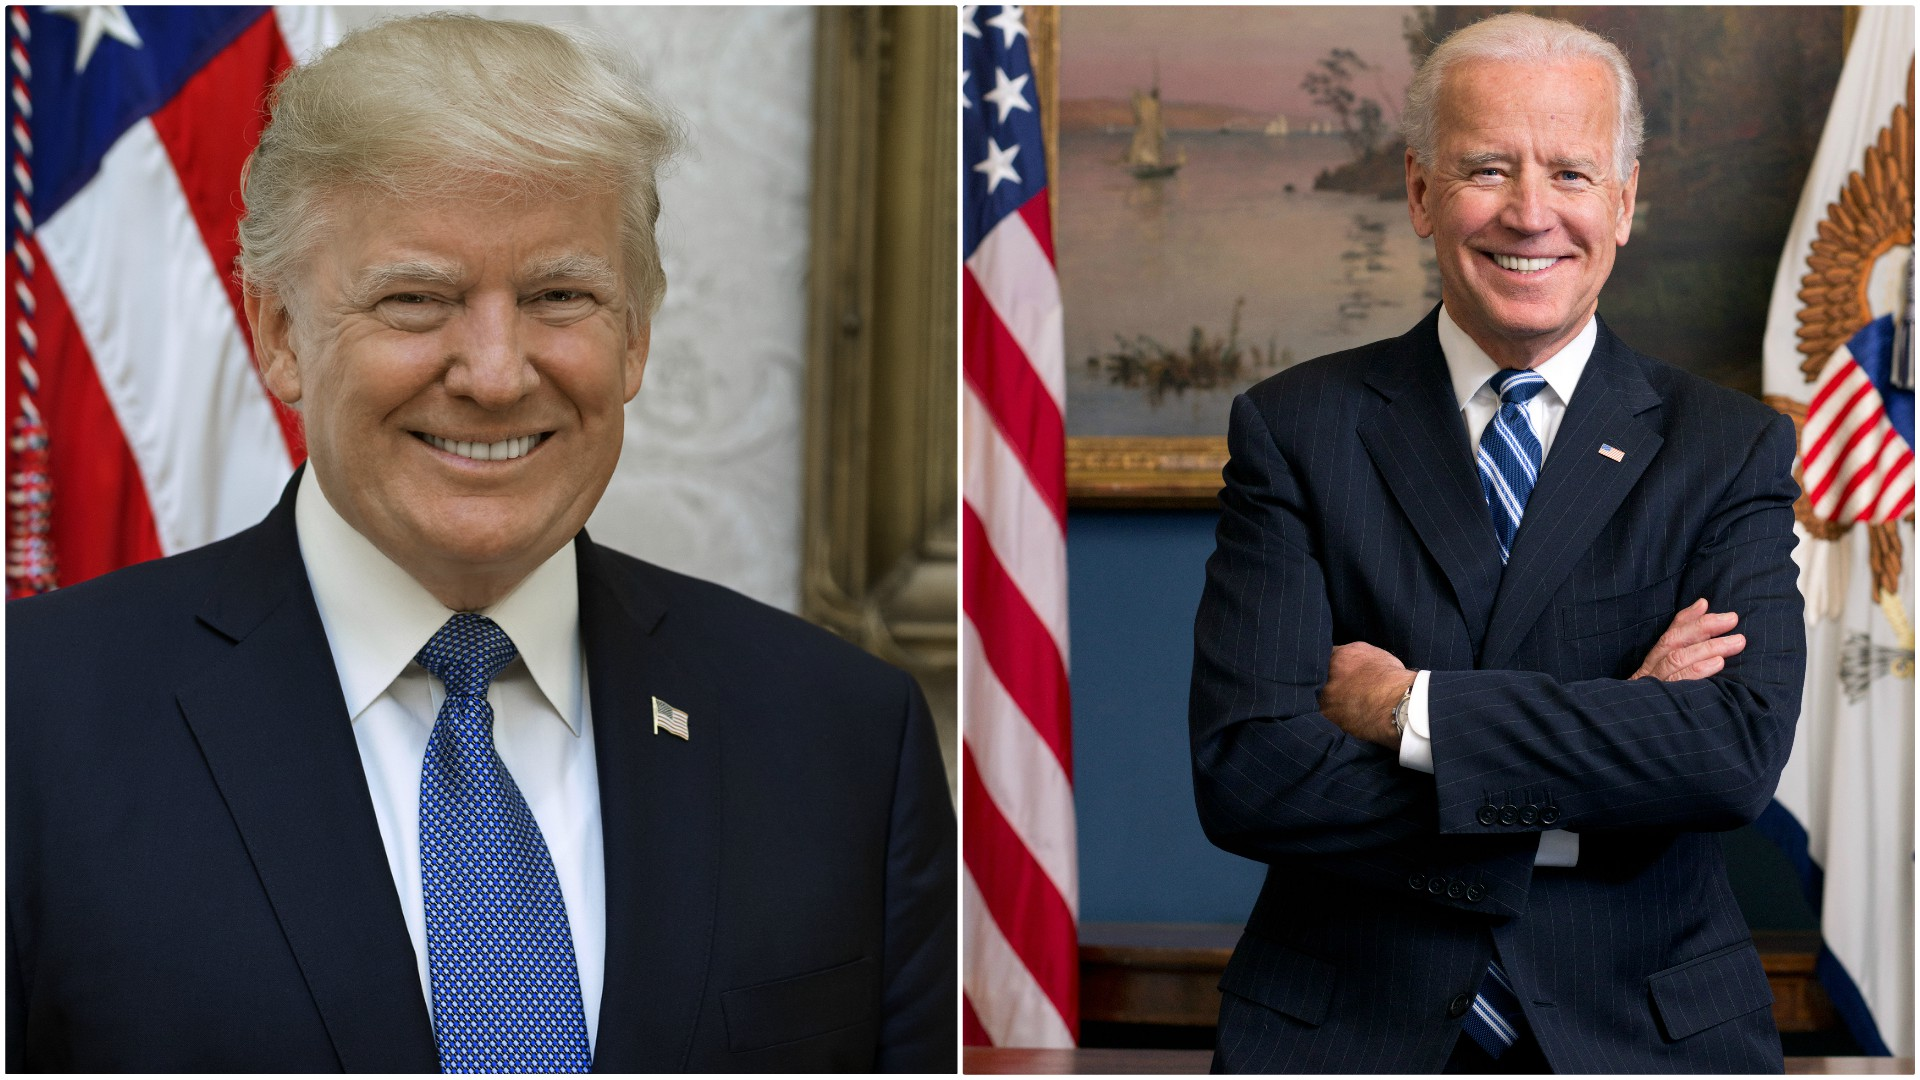 The official portraits of Donald Trump and Joe Biden. (Courtesy of the White House)